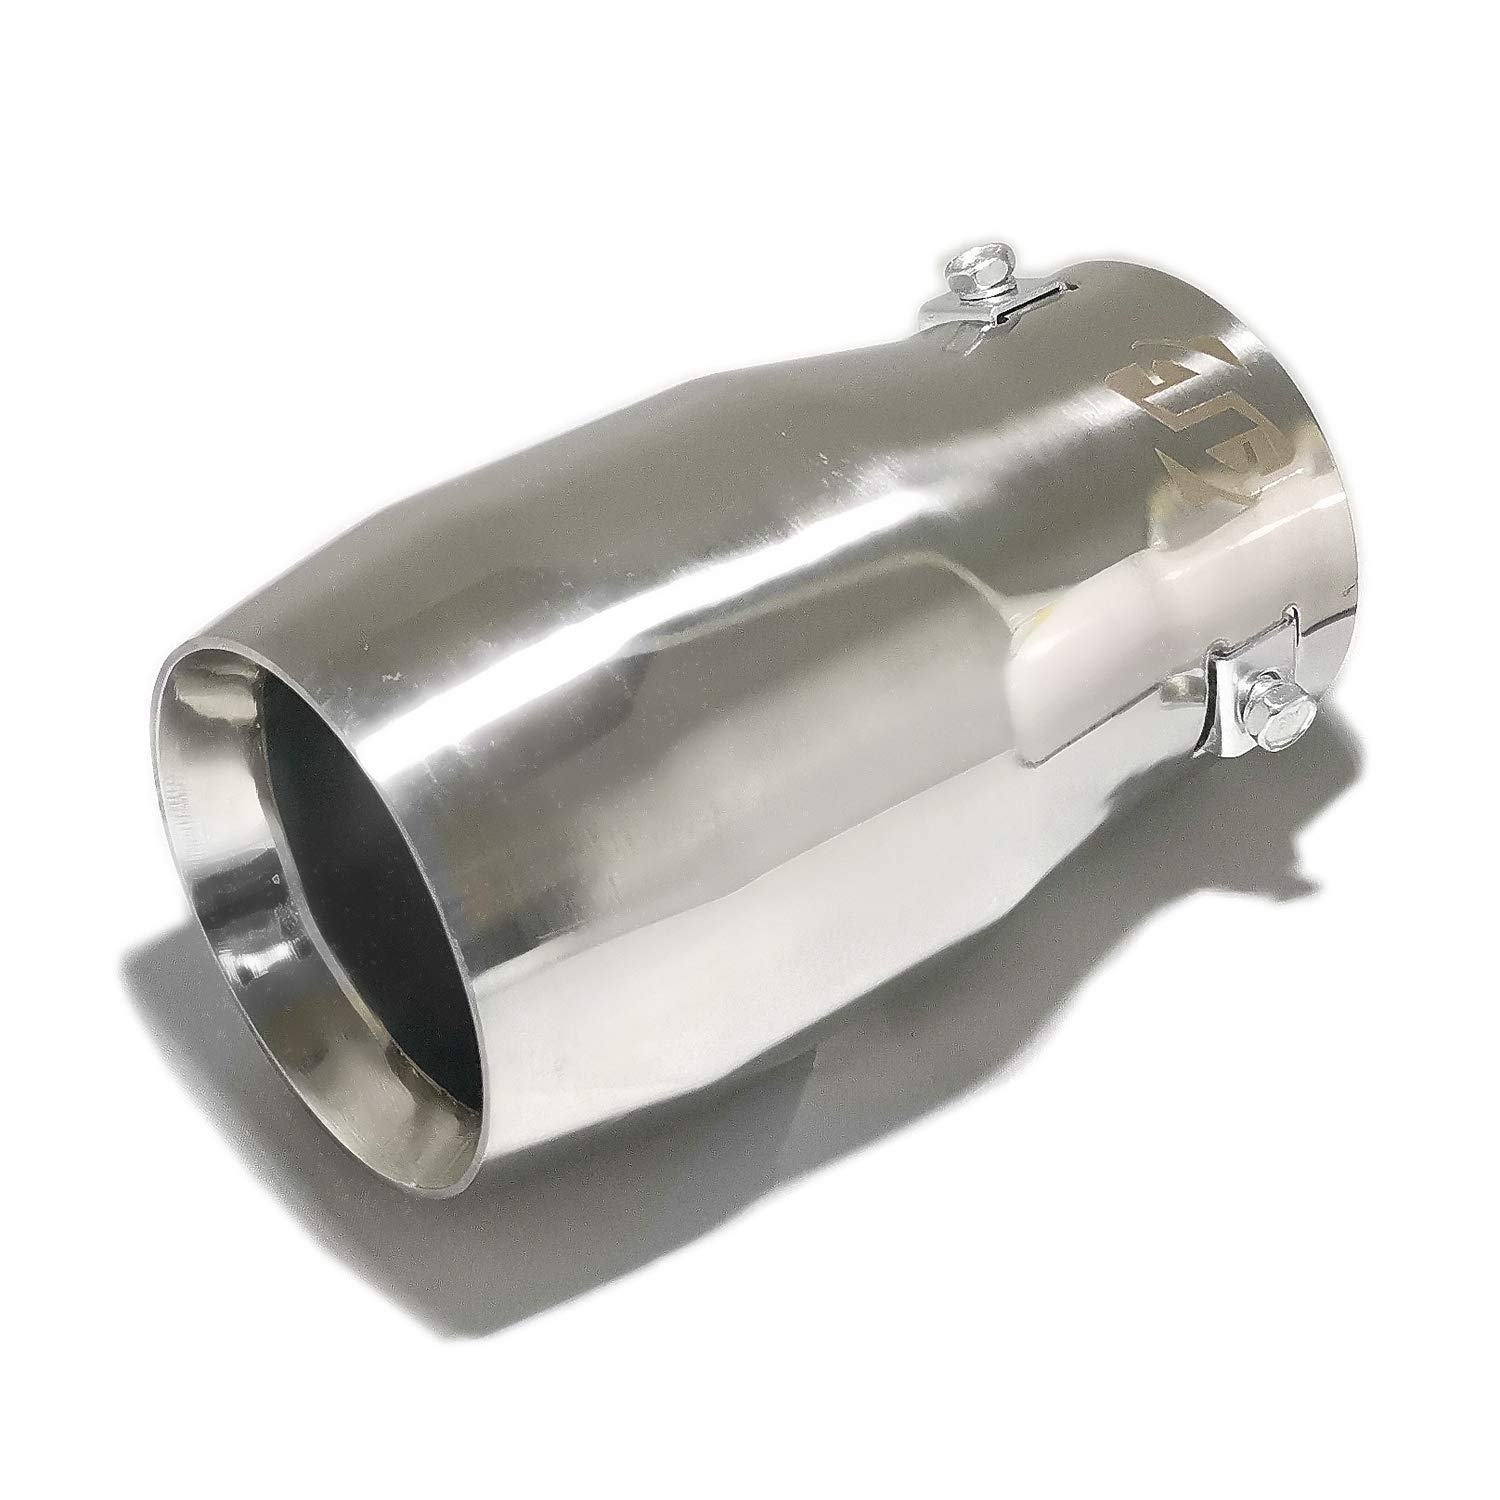 Stainless Steel to give Chrome Effect Double Wall Exhaust tip Car Muffler Tips to Fit 2 to 2.5 Inch Exhaust Tail Pipe Diameter